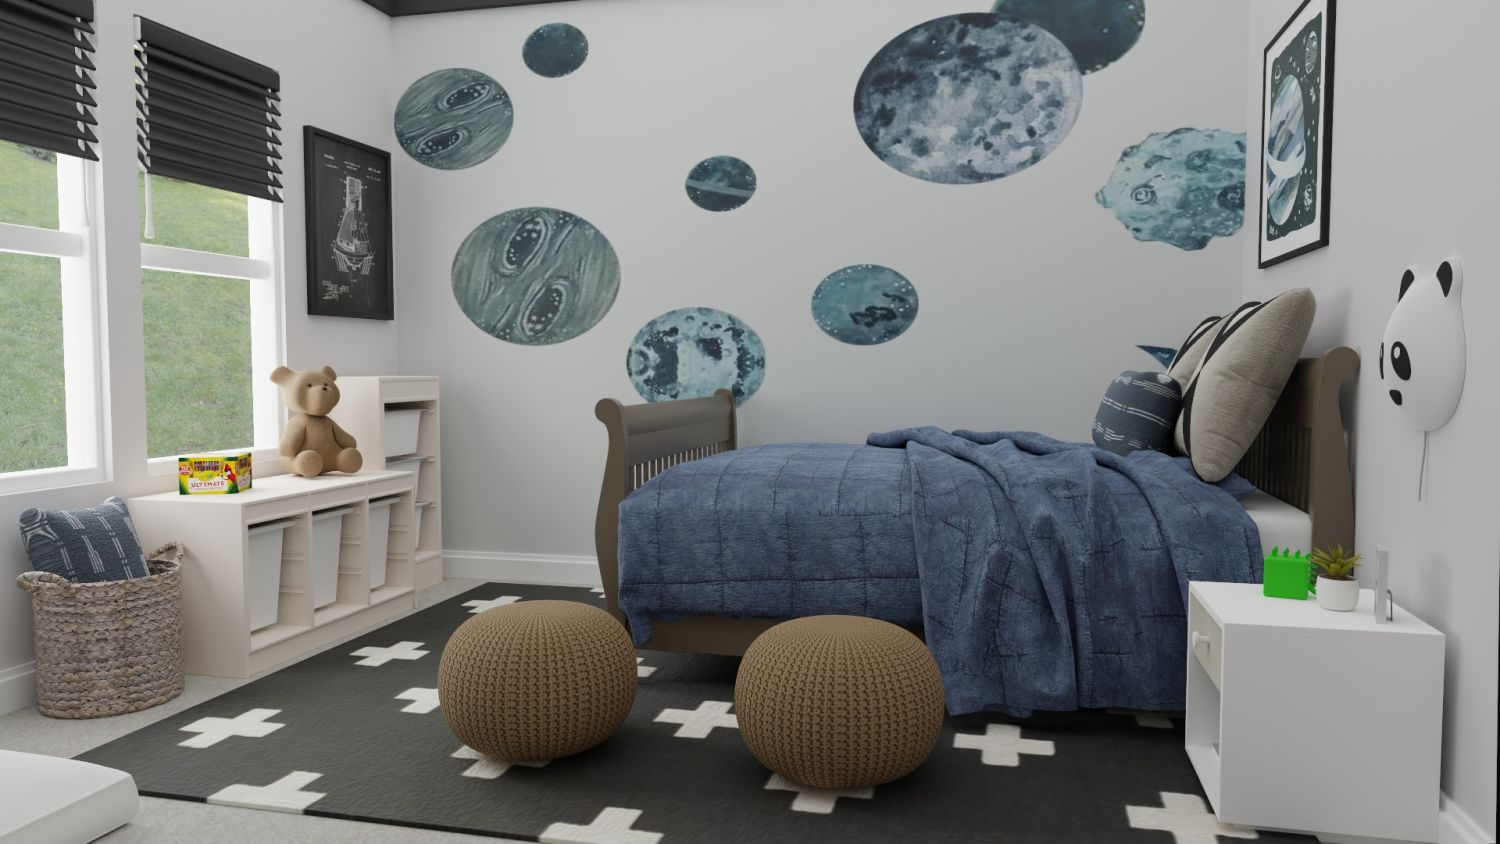 Space Inspired: Urban Transitional Kid's Room Design By Spacejoy